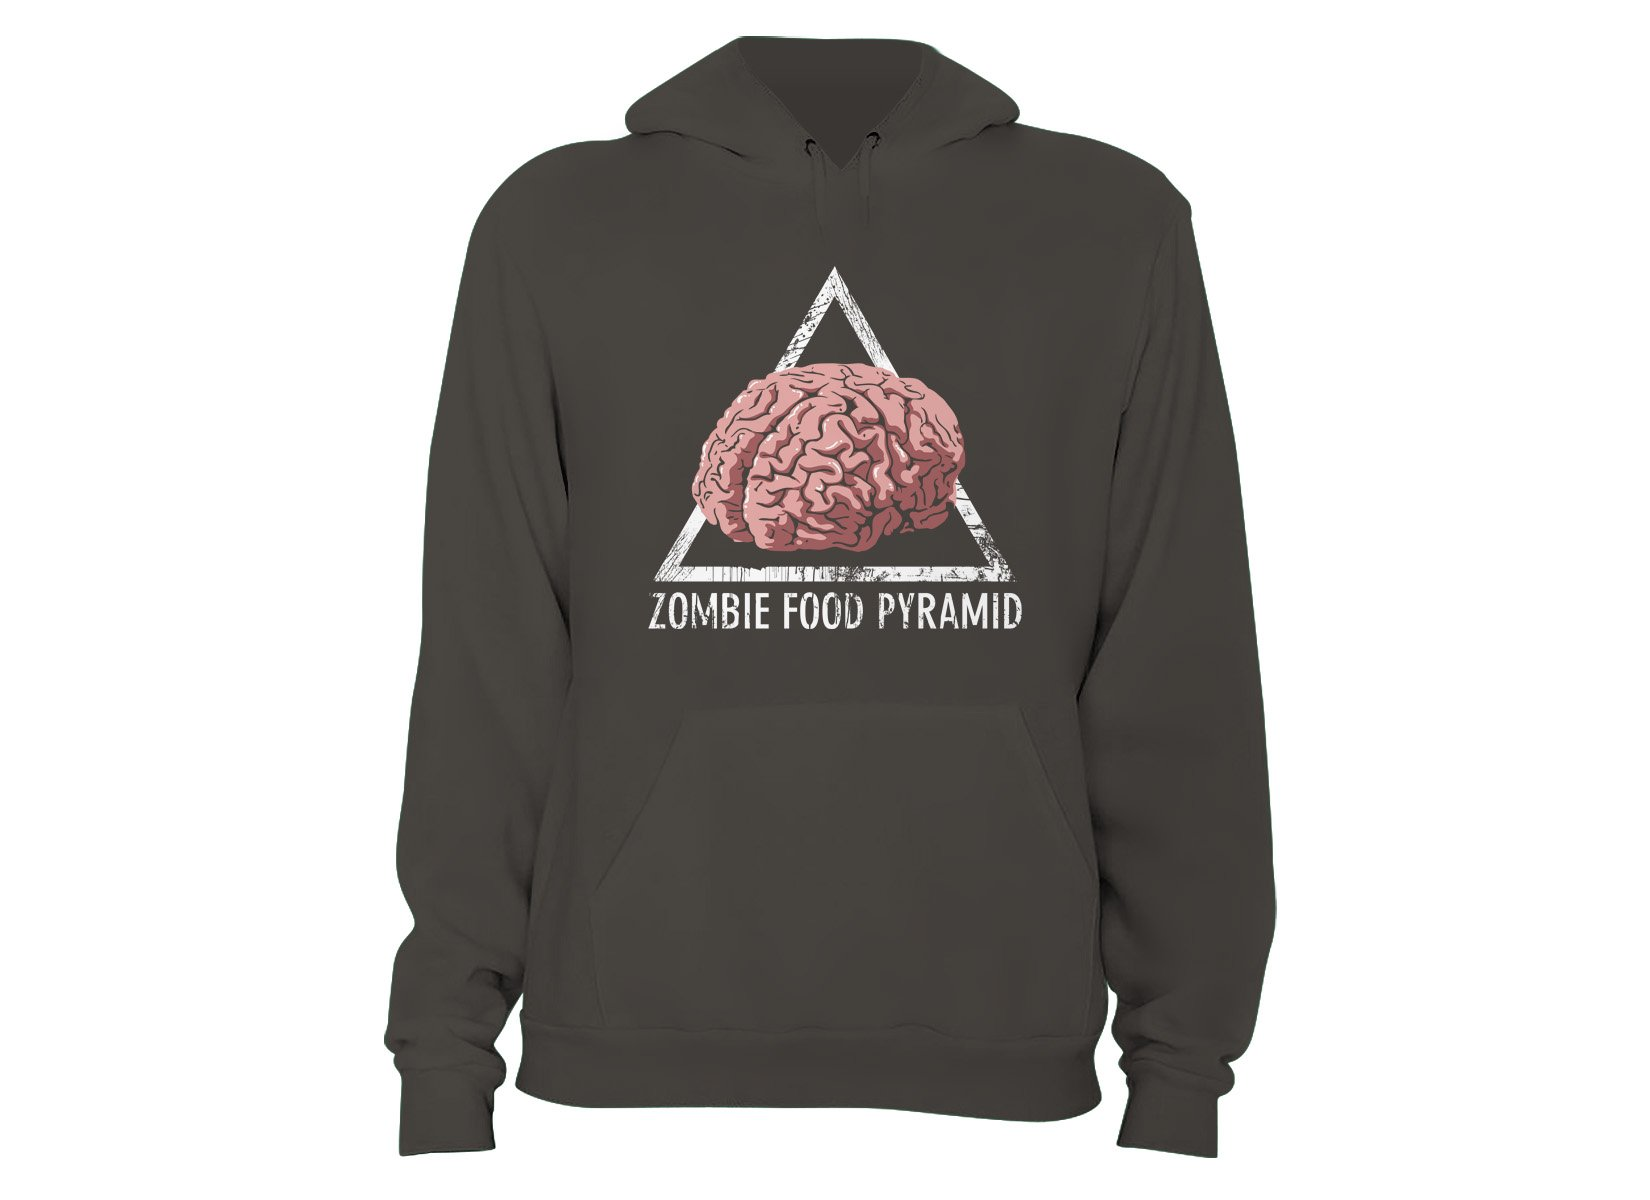 Zombie Food Pyramid on Hoodie